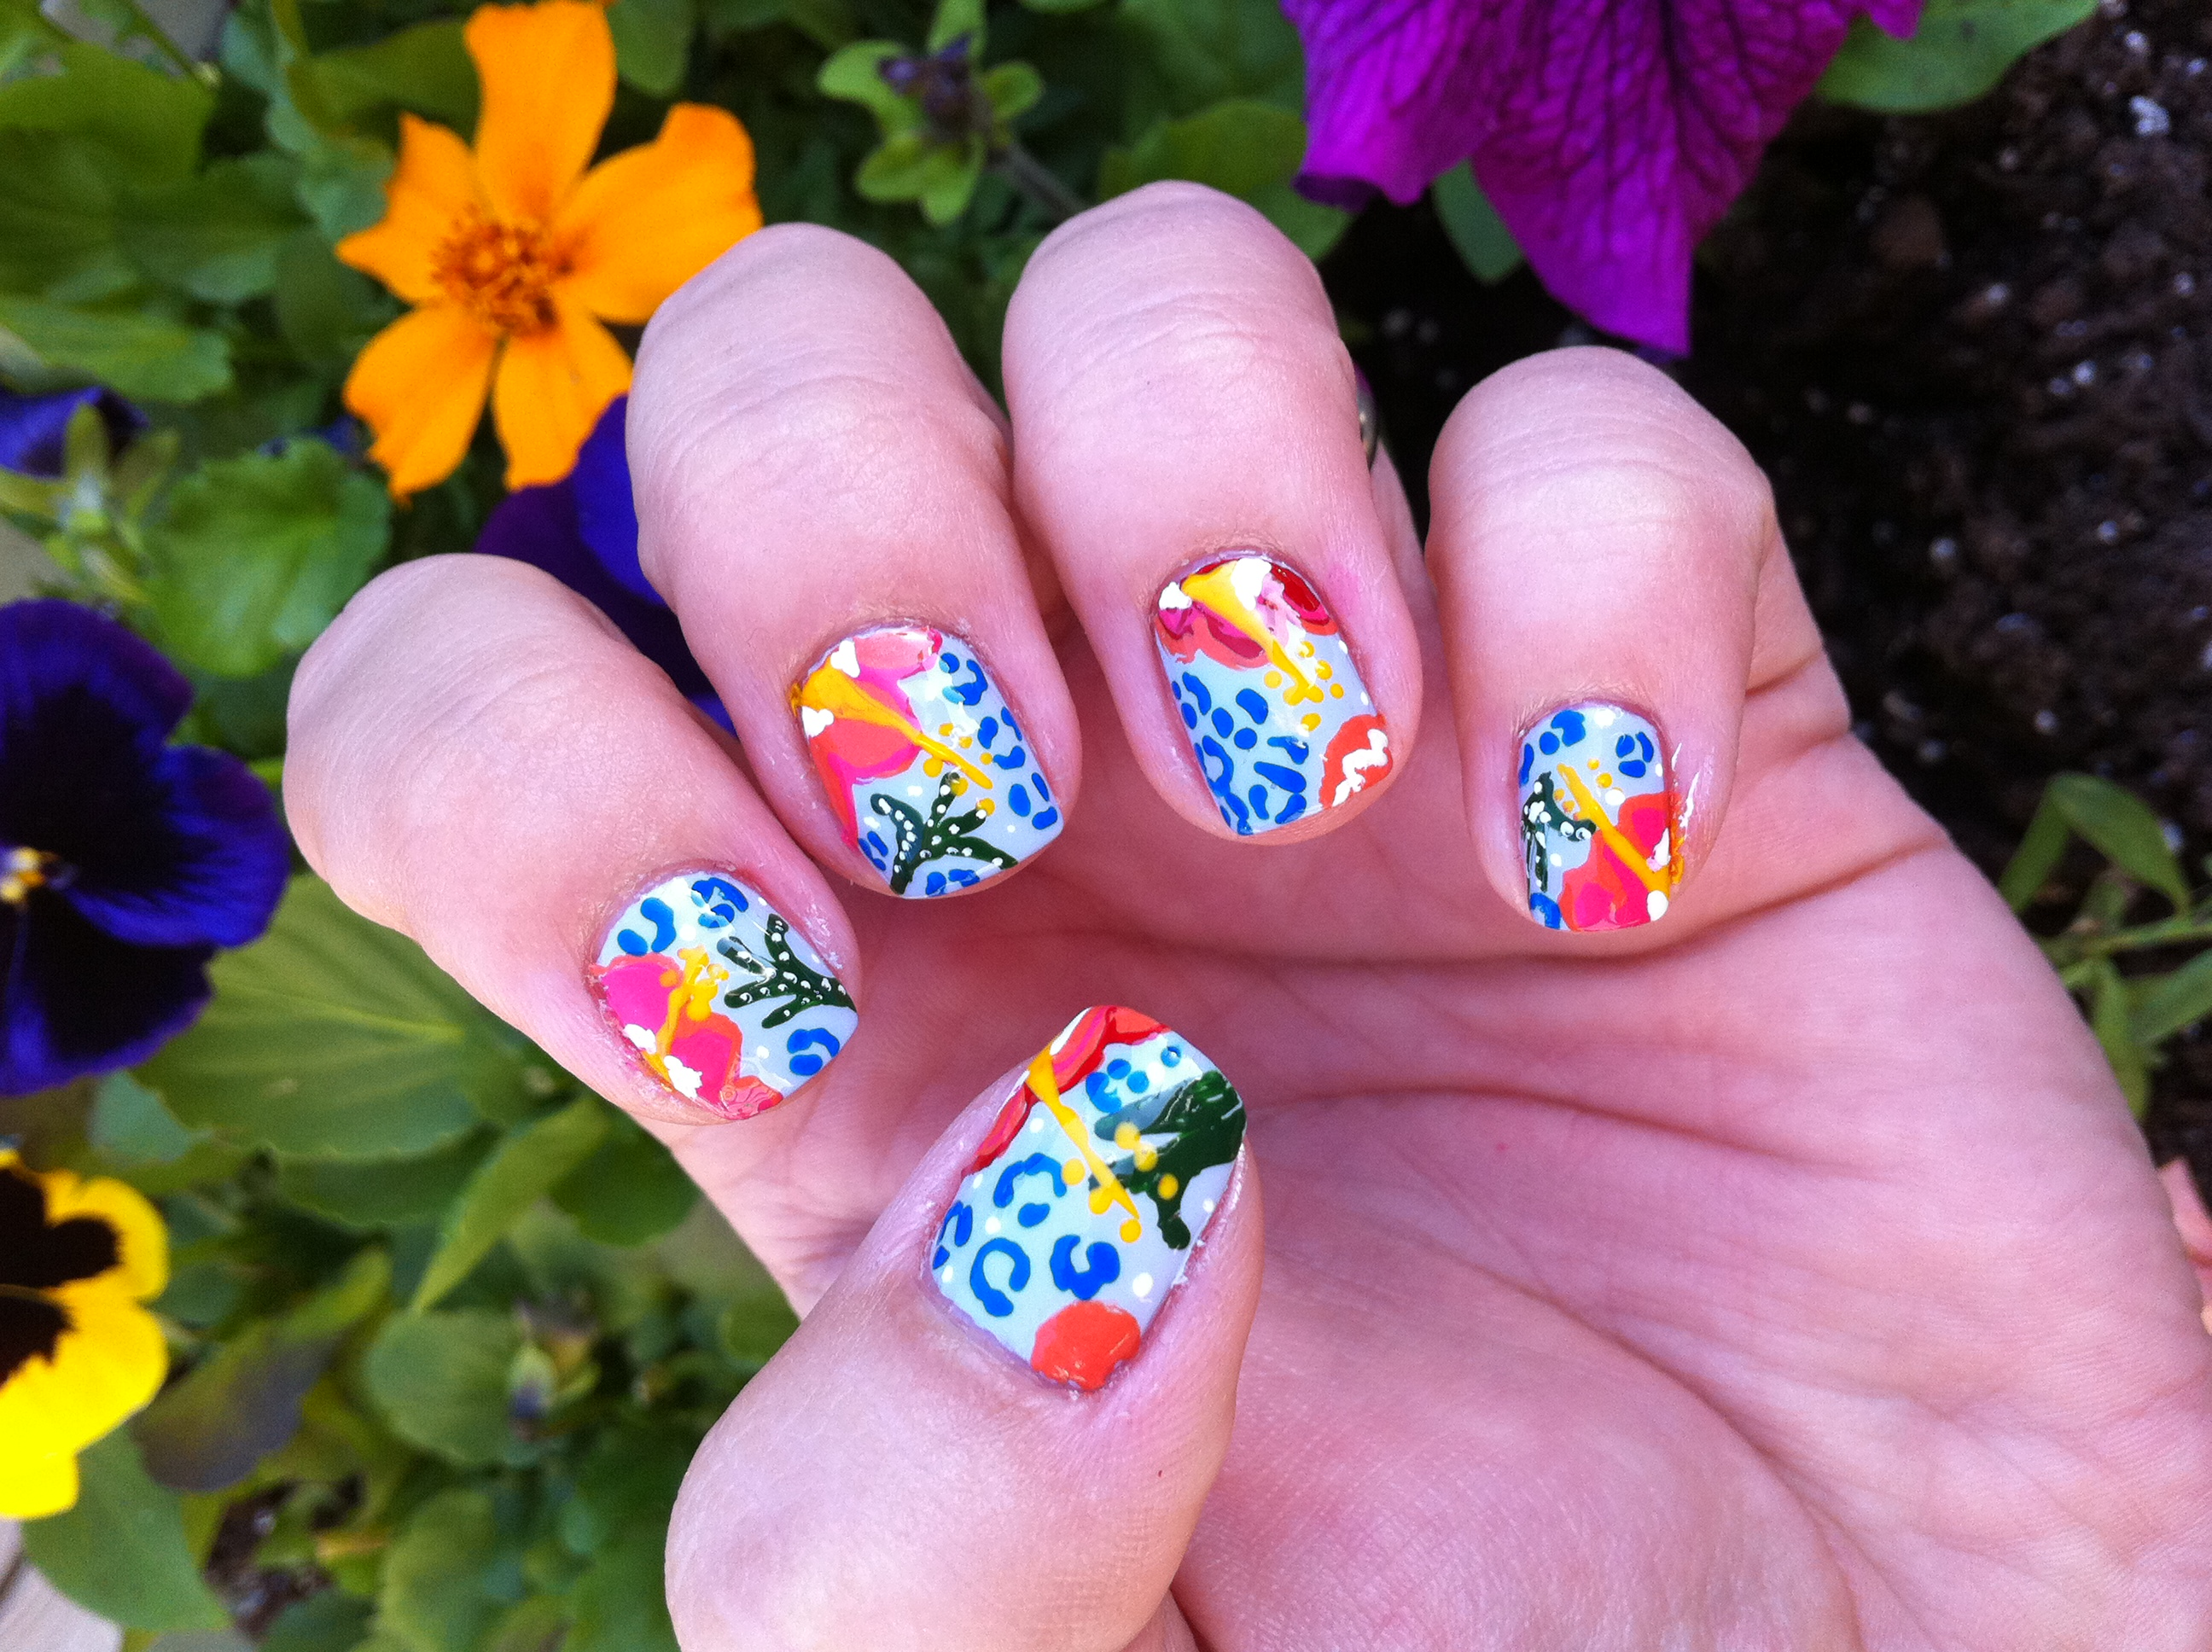 Nail art is the art of decorating nails with different materials ...